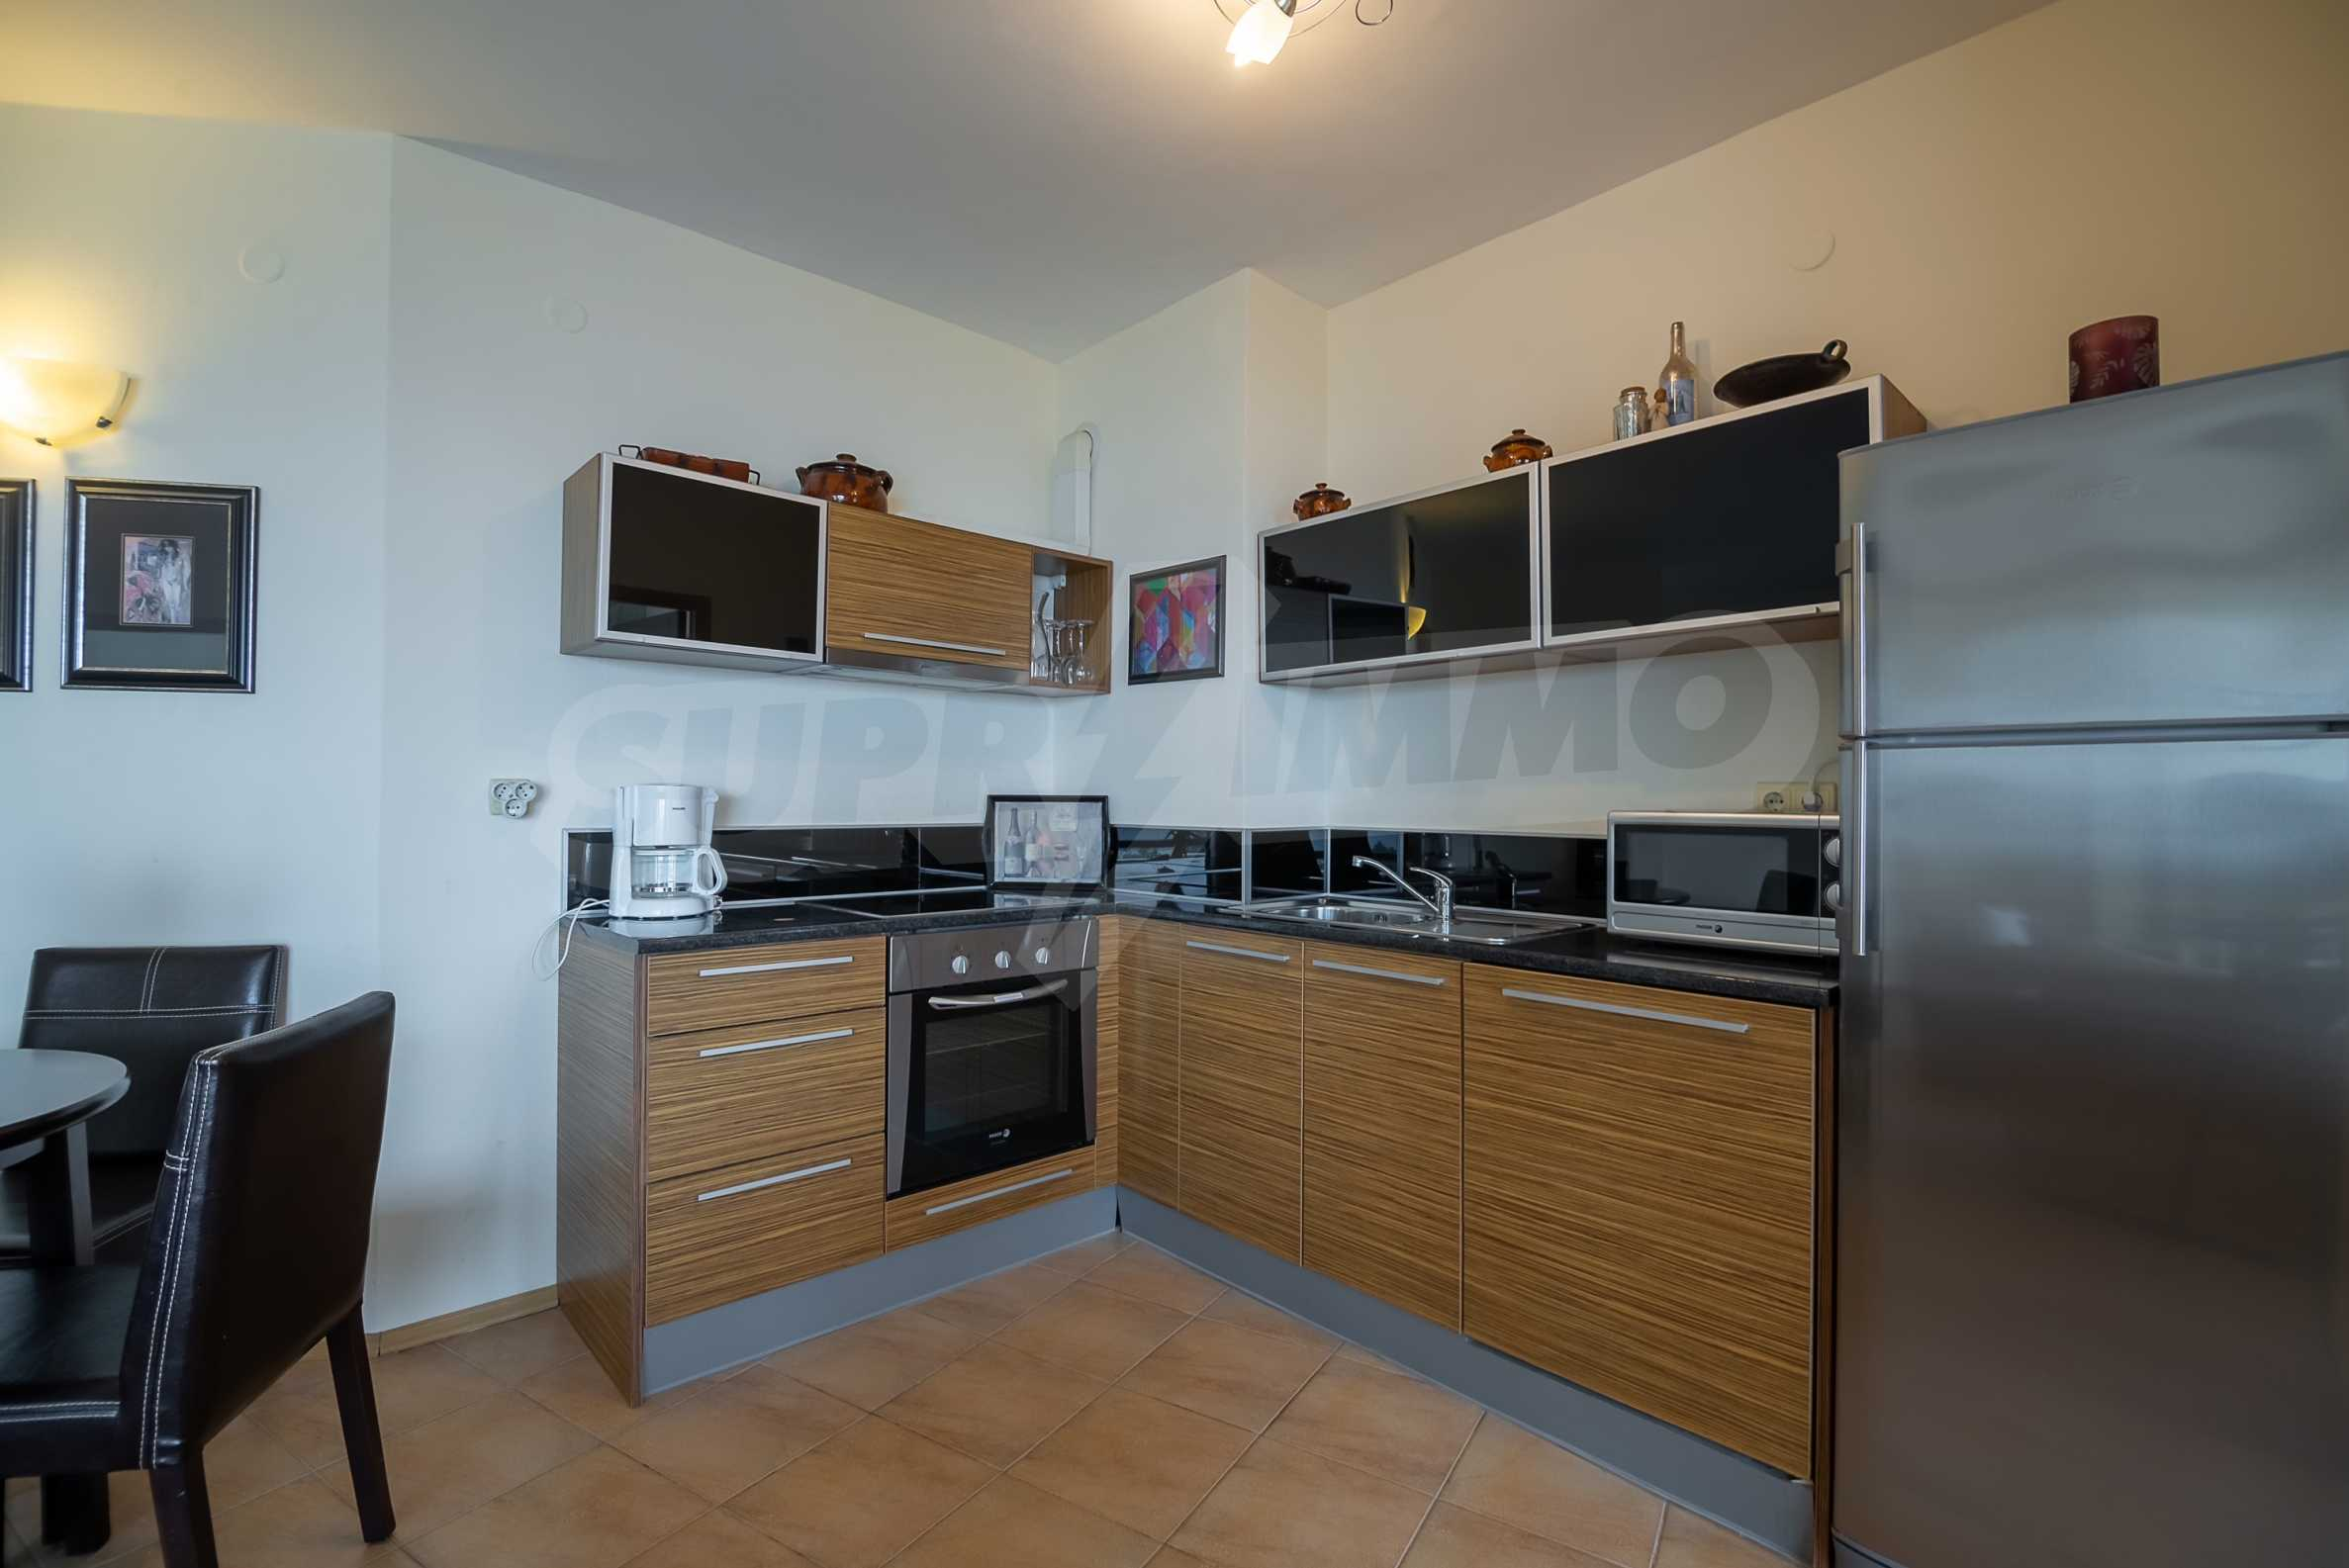 Penthouse Panorama - two-bedroom property overlooking the sea and the port